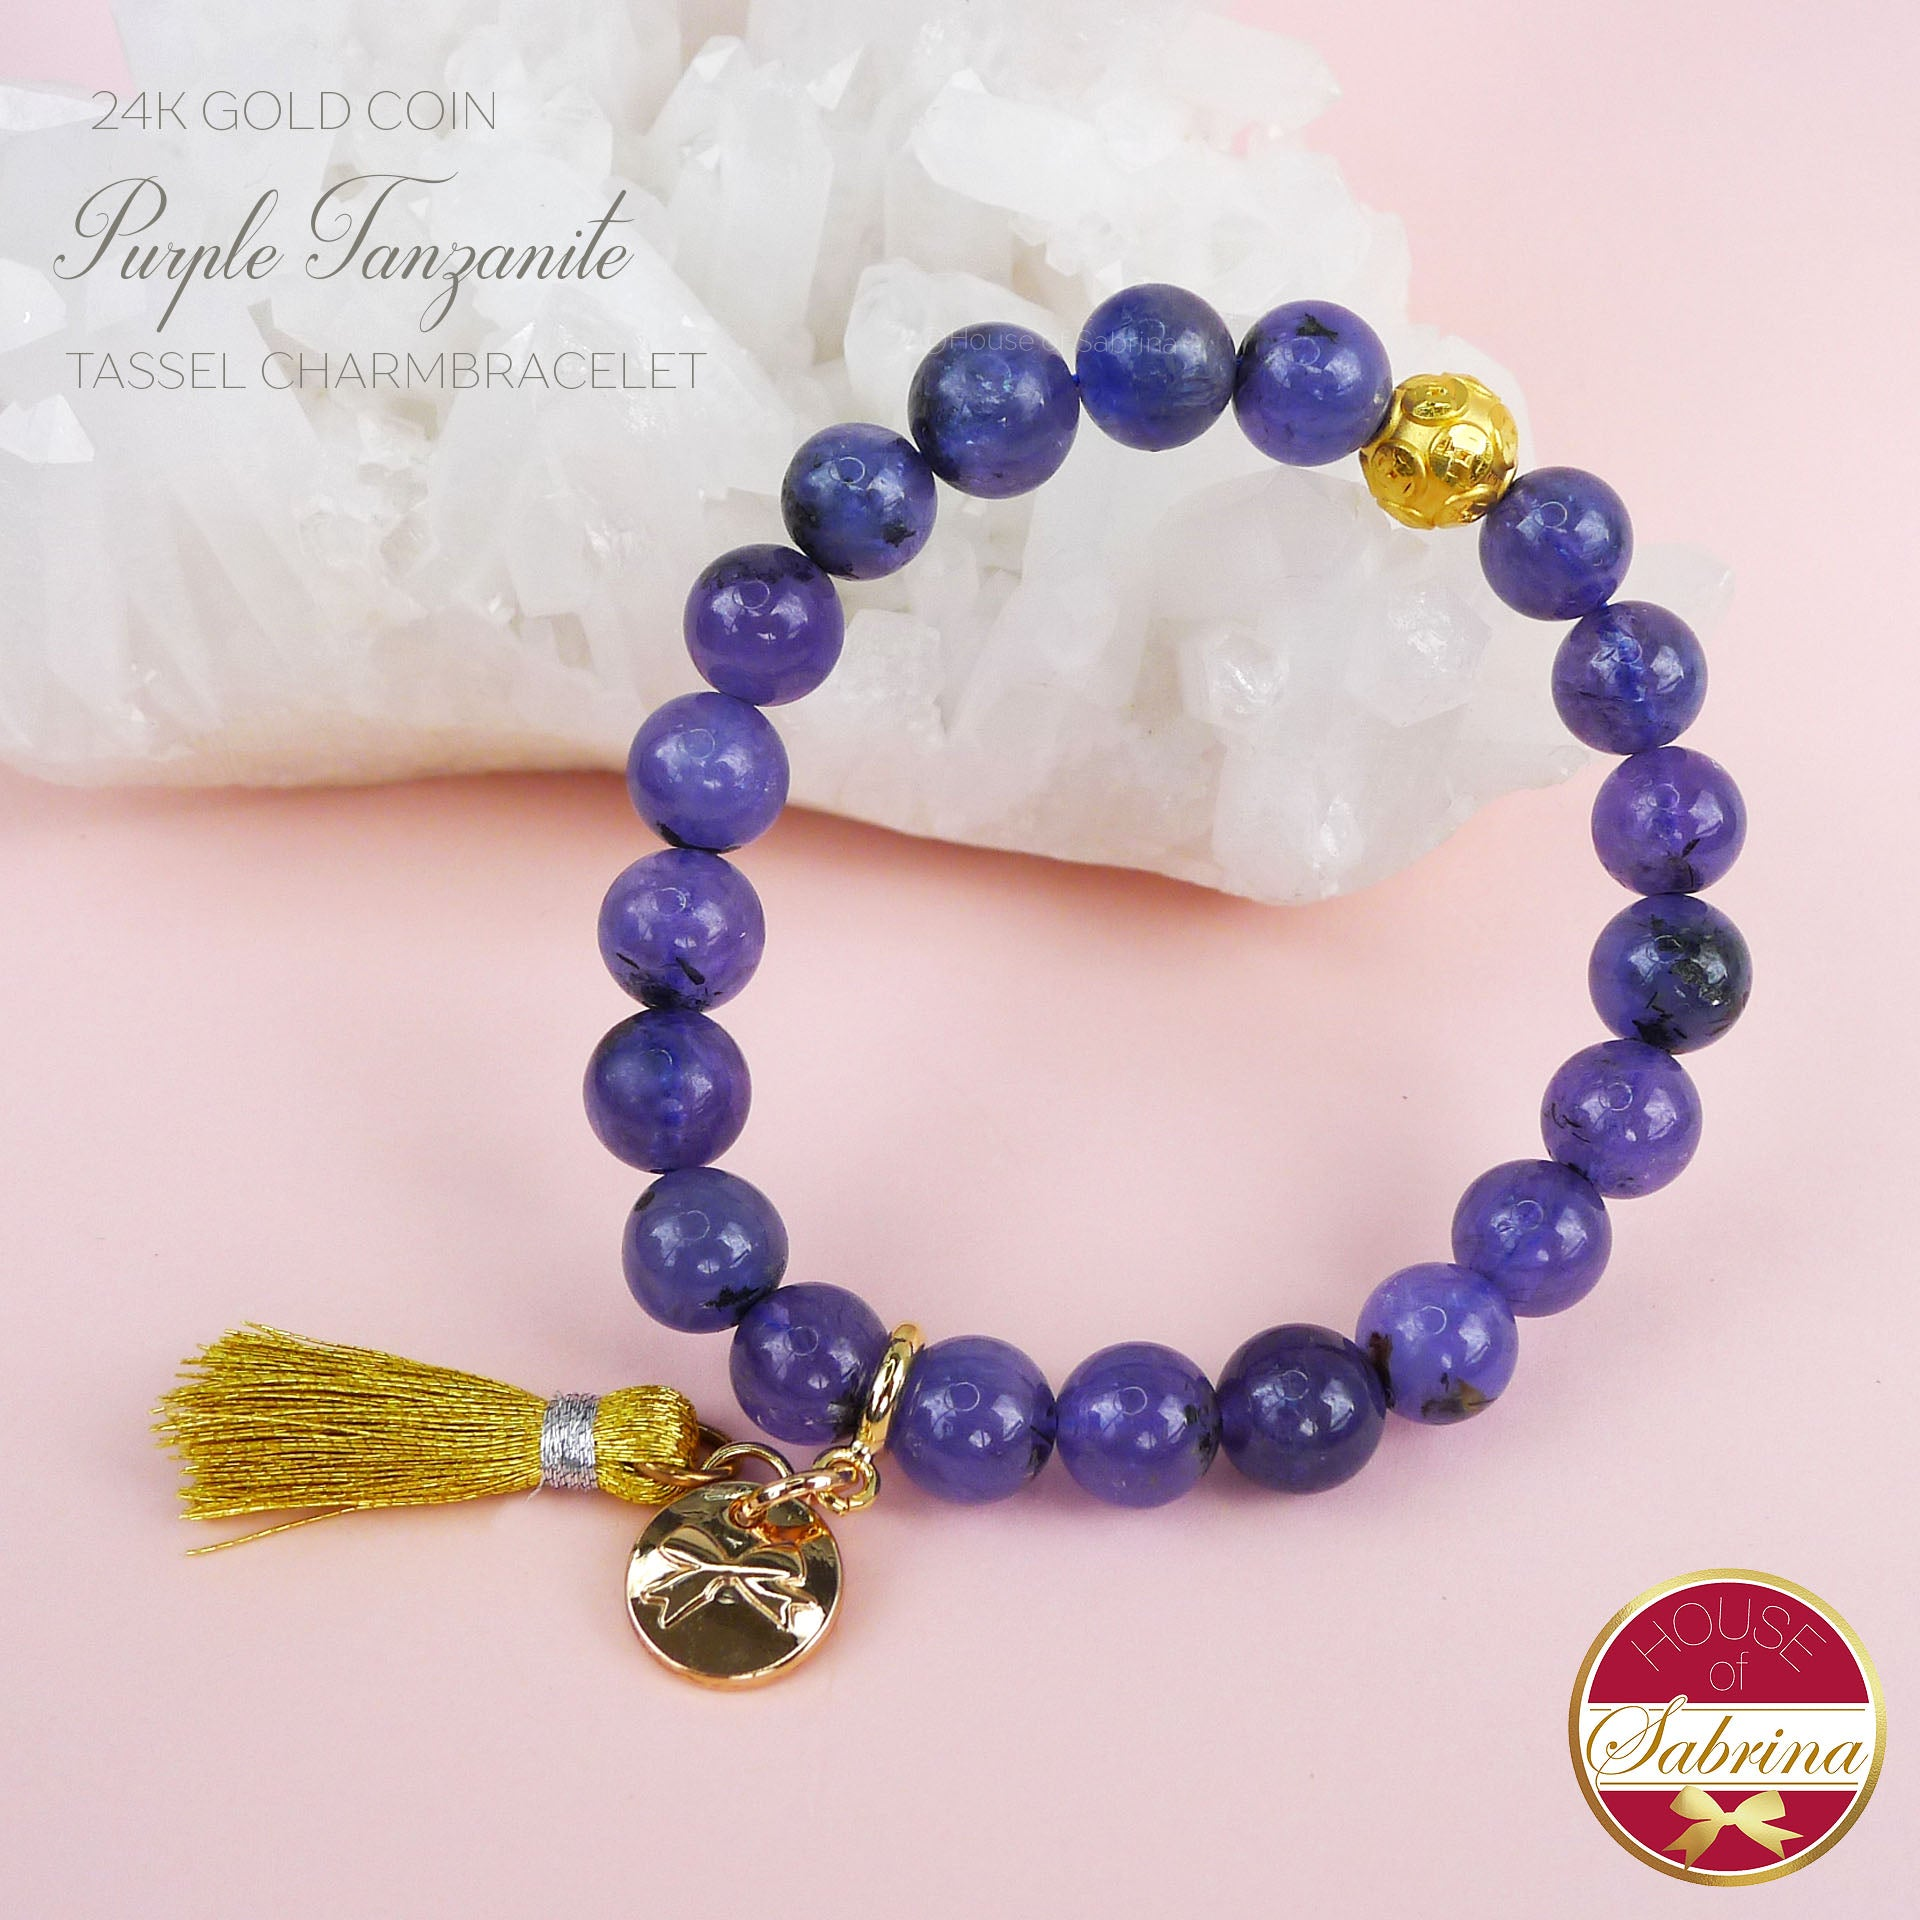 24K GOLD FORTUNE COIN + HIGH GRADE PURPLE TANZANITE